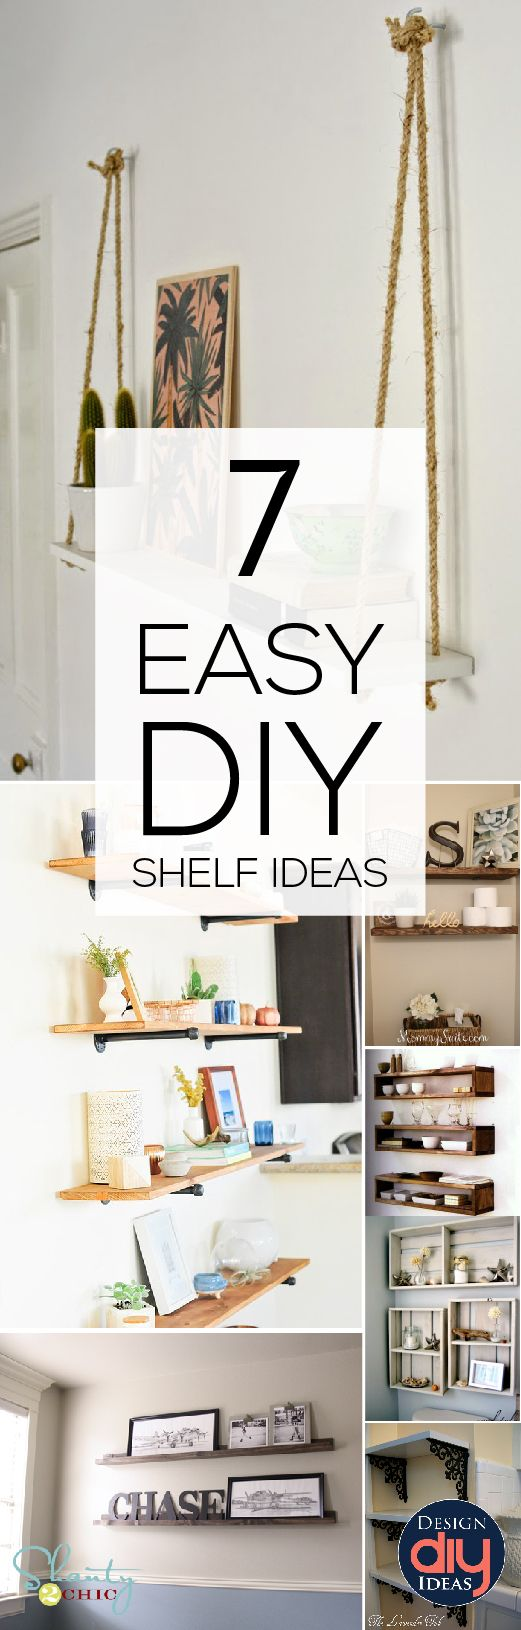 Need some new shelves? Check out these 7 Easy DIY shelf ideas!